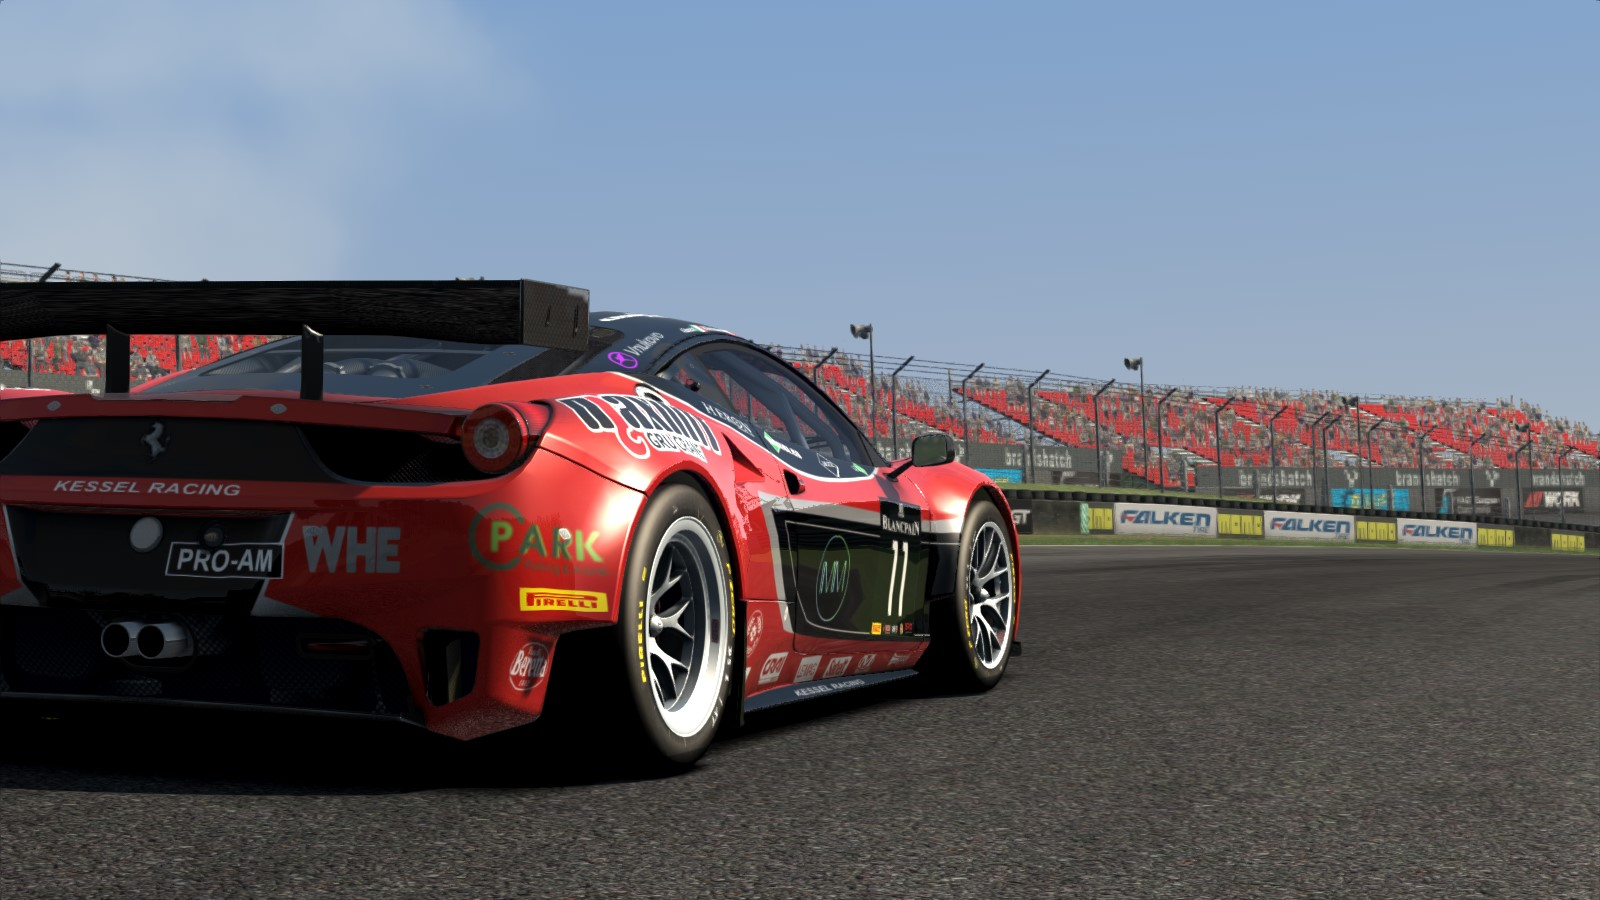 Screenshot_ferrari_458_gt2_brandshatch_gp_2-5-115-20-5-30.jpg